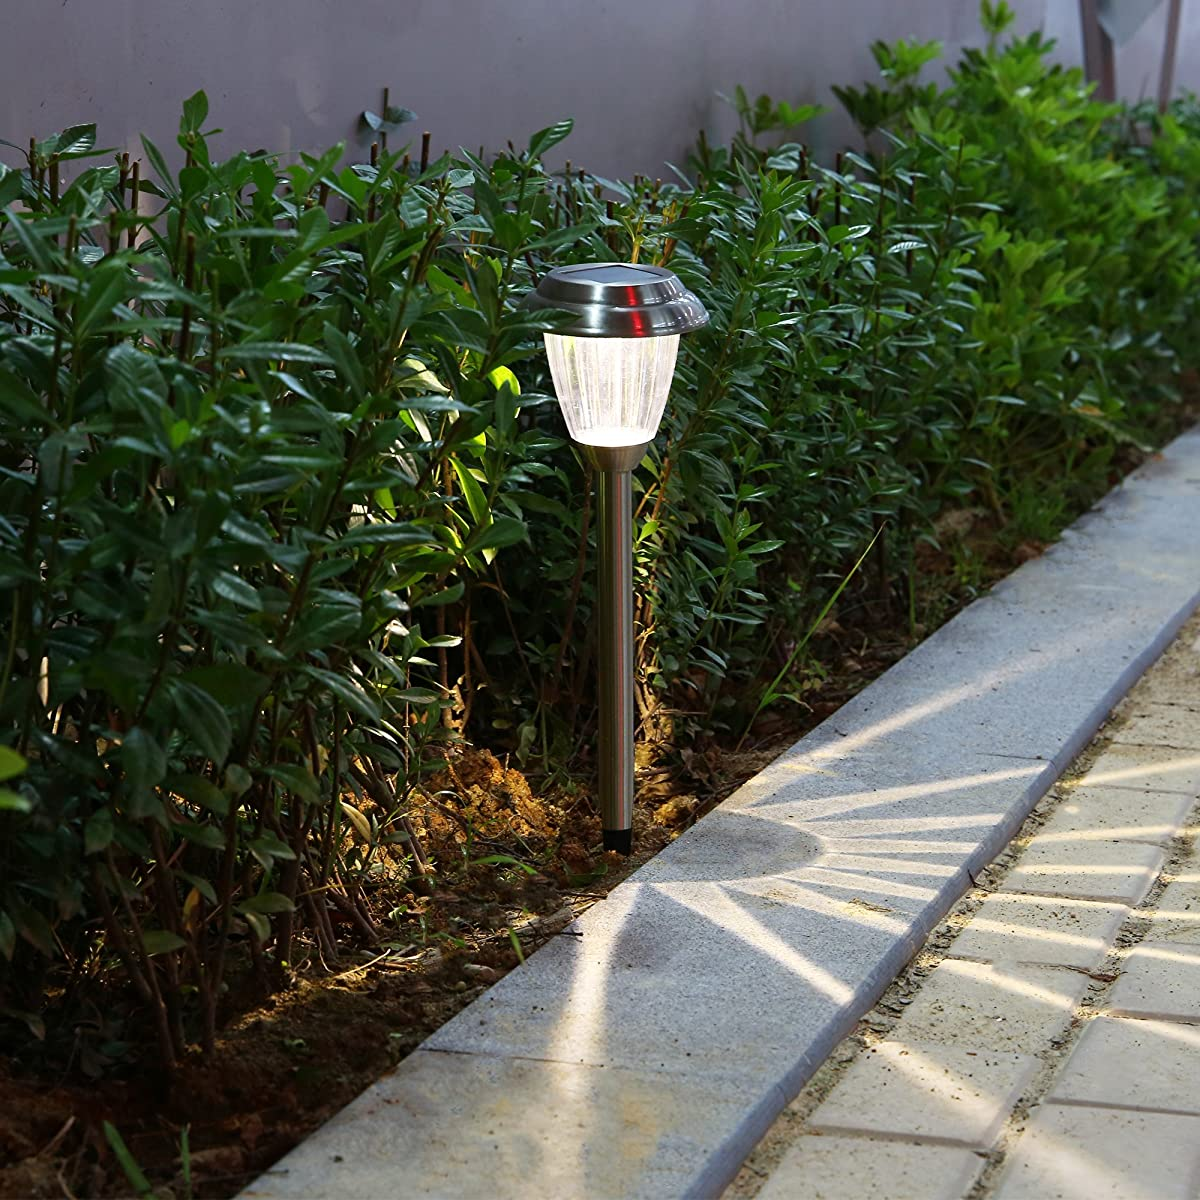 Solar LED Outdoor Lights 8-Pack Stainless Steel Pathway Landscape lights